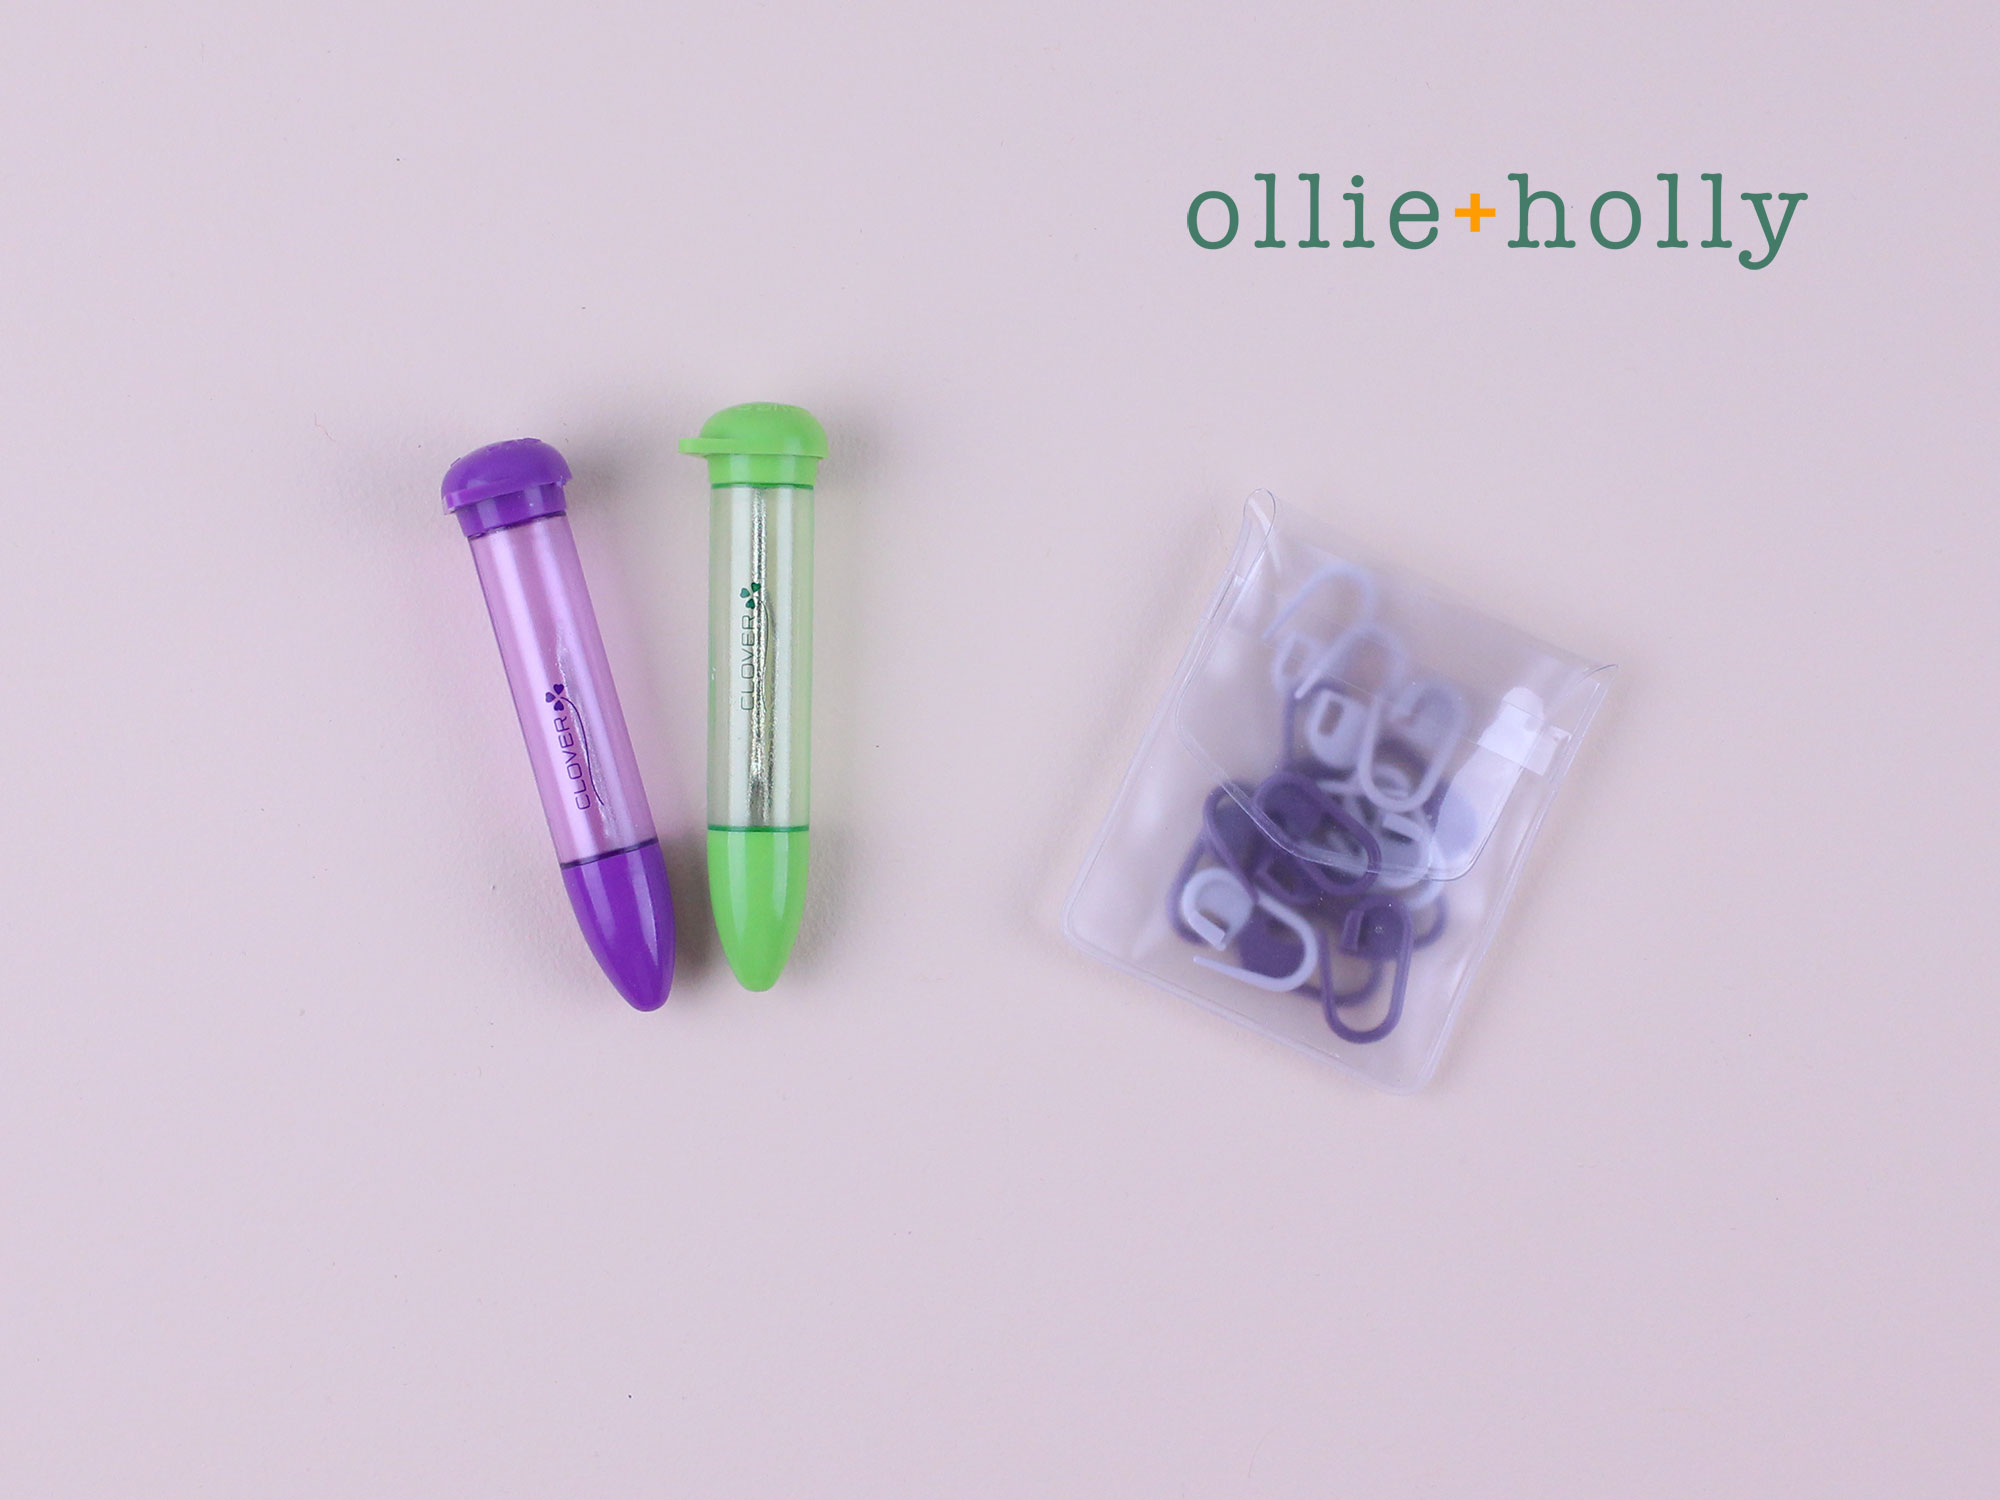 Ollie Holly Darning Needles and Stitch Markers